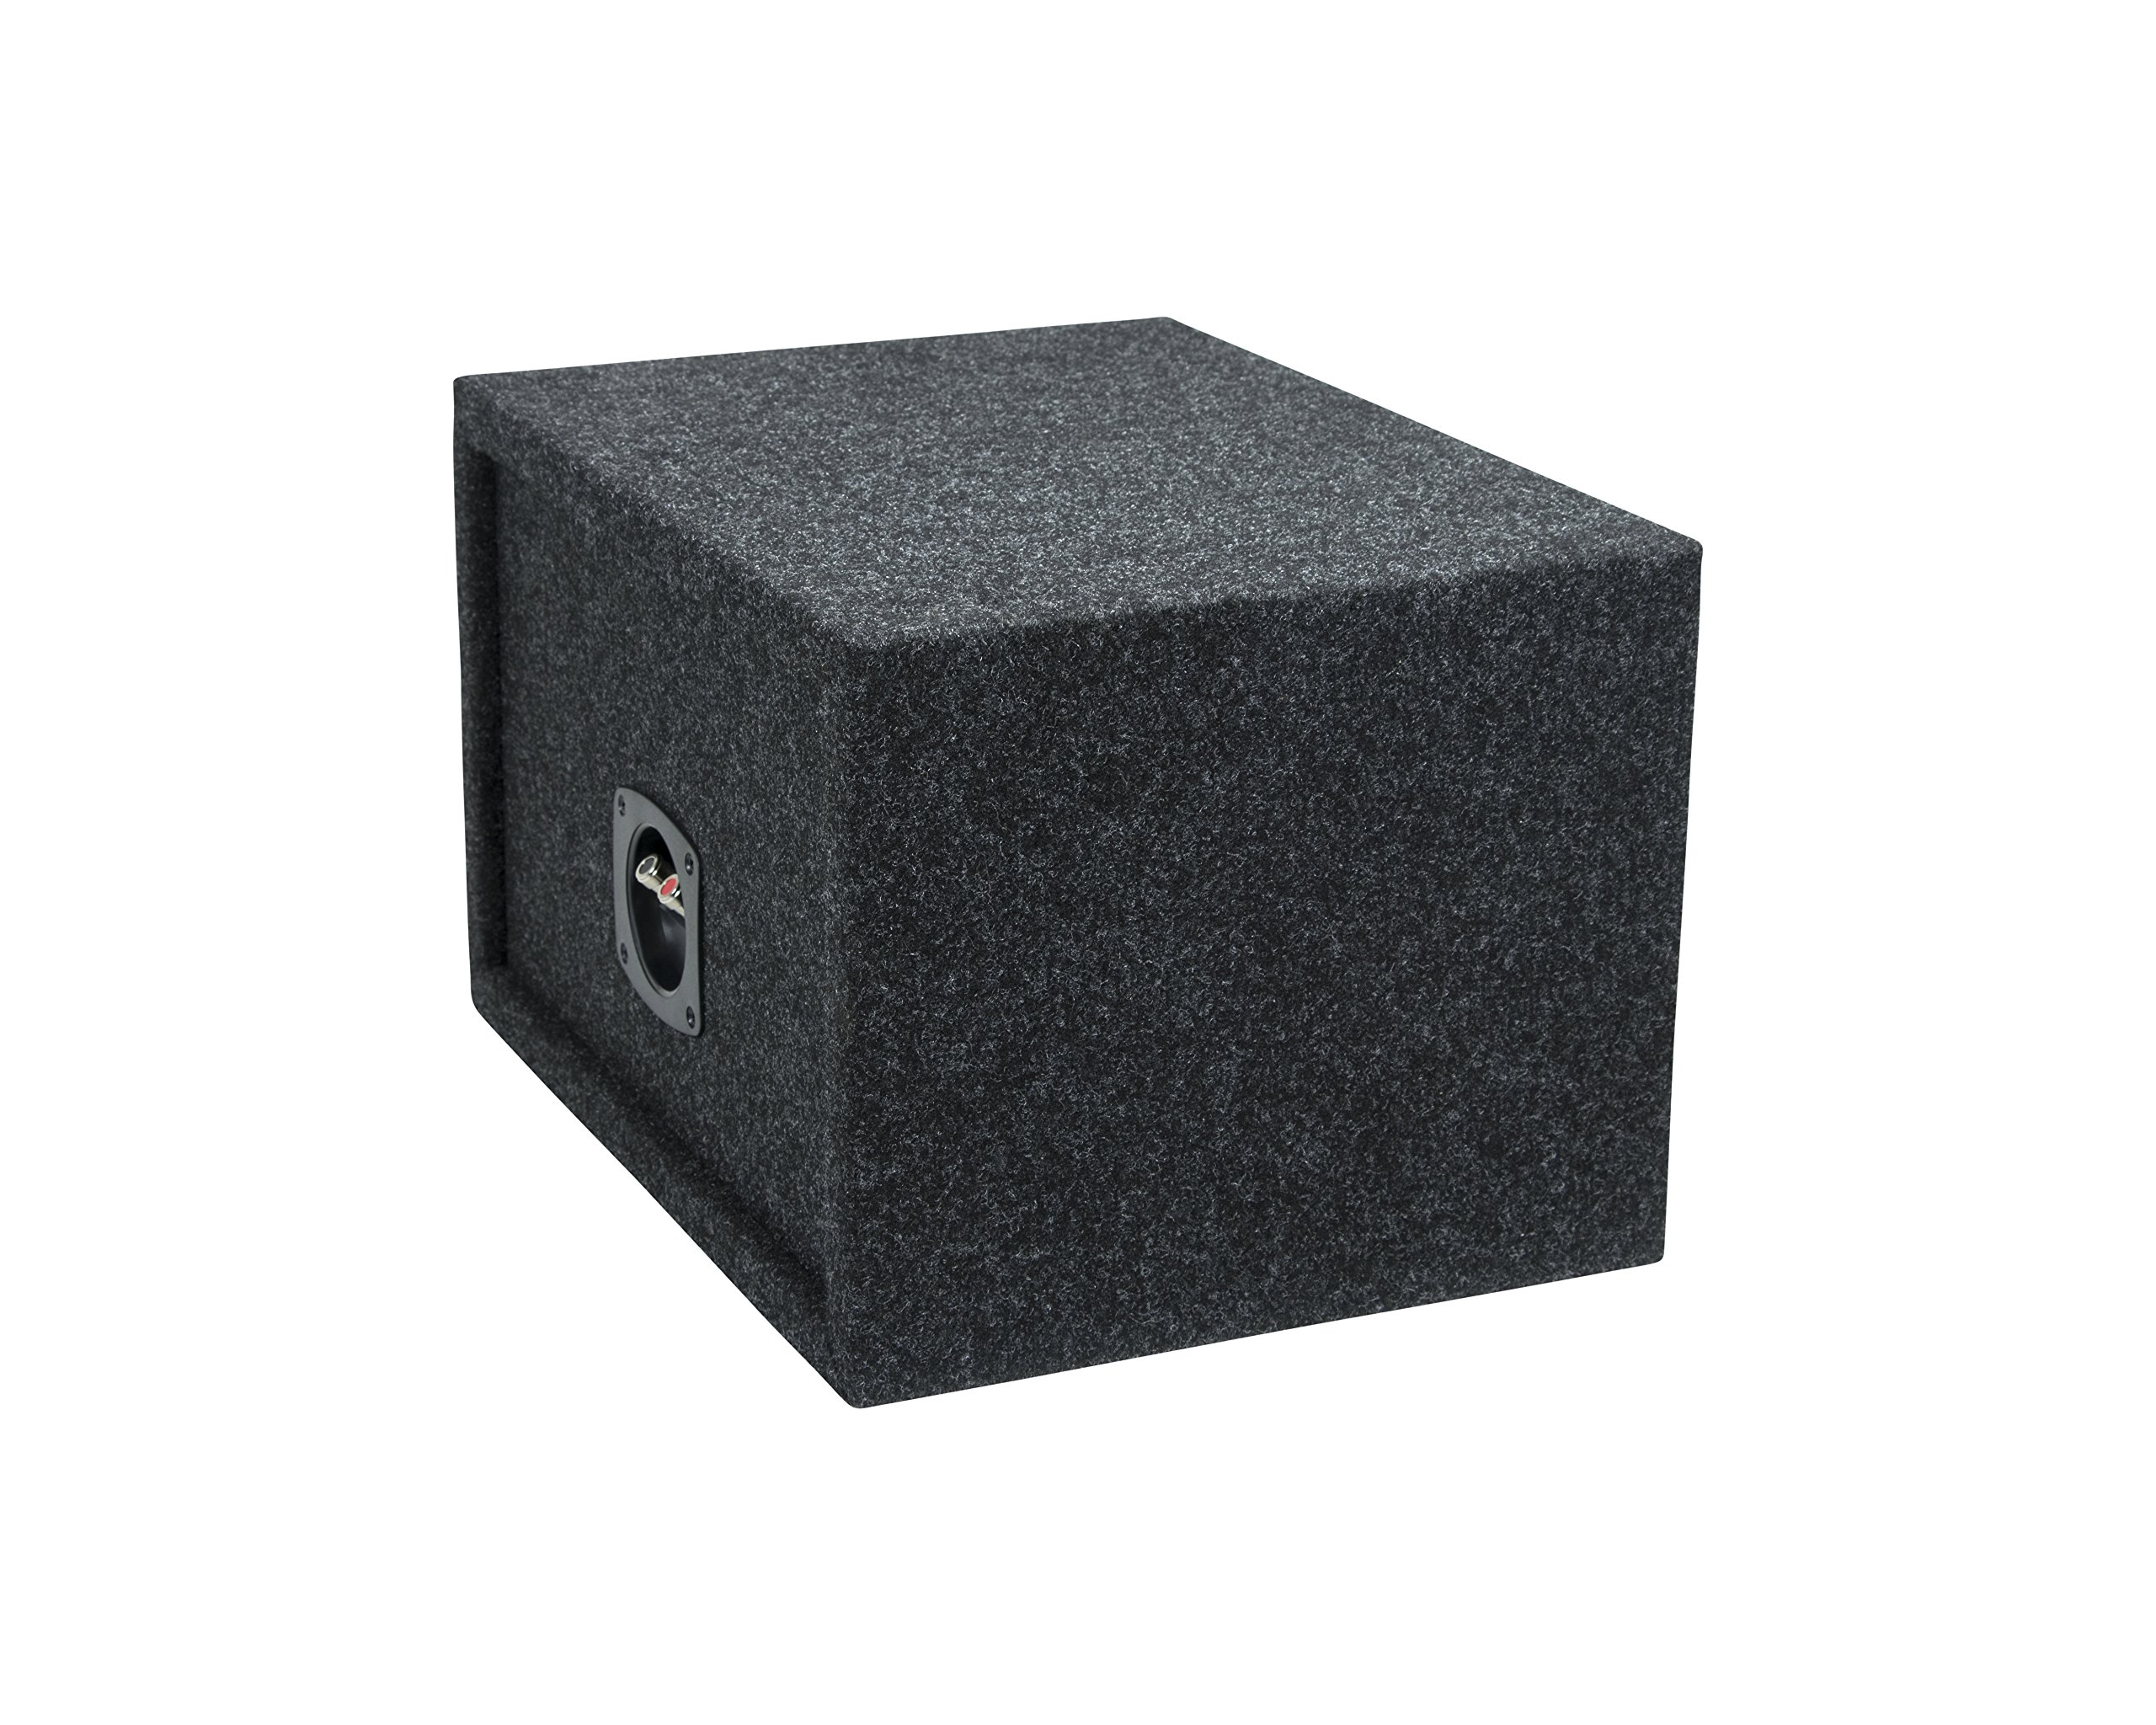 3//4 Premium MDF Construction Made in USA JL Audio 8W3v3 Subwoofer Sealed Box Enclosure 0.30 Cubic Feet Sealed Built for Single JL Audio 8 W3v3 Car Sub Woofer 10 W x 10 H x 9.5 D